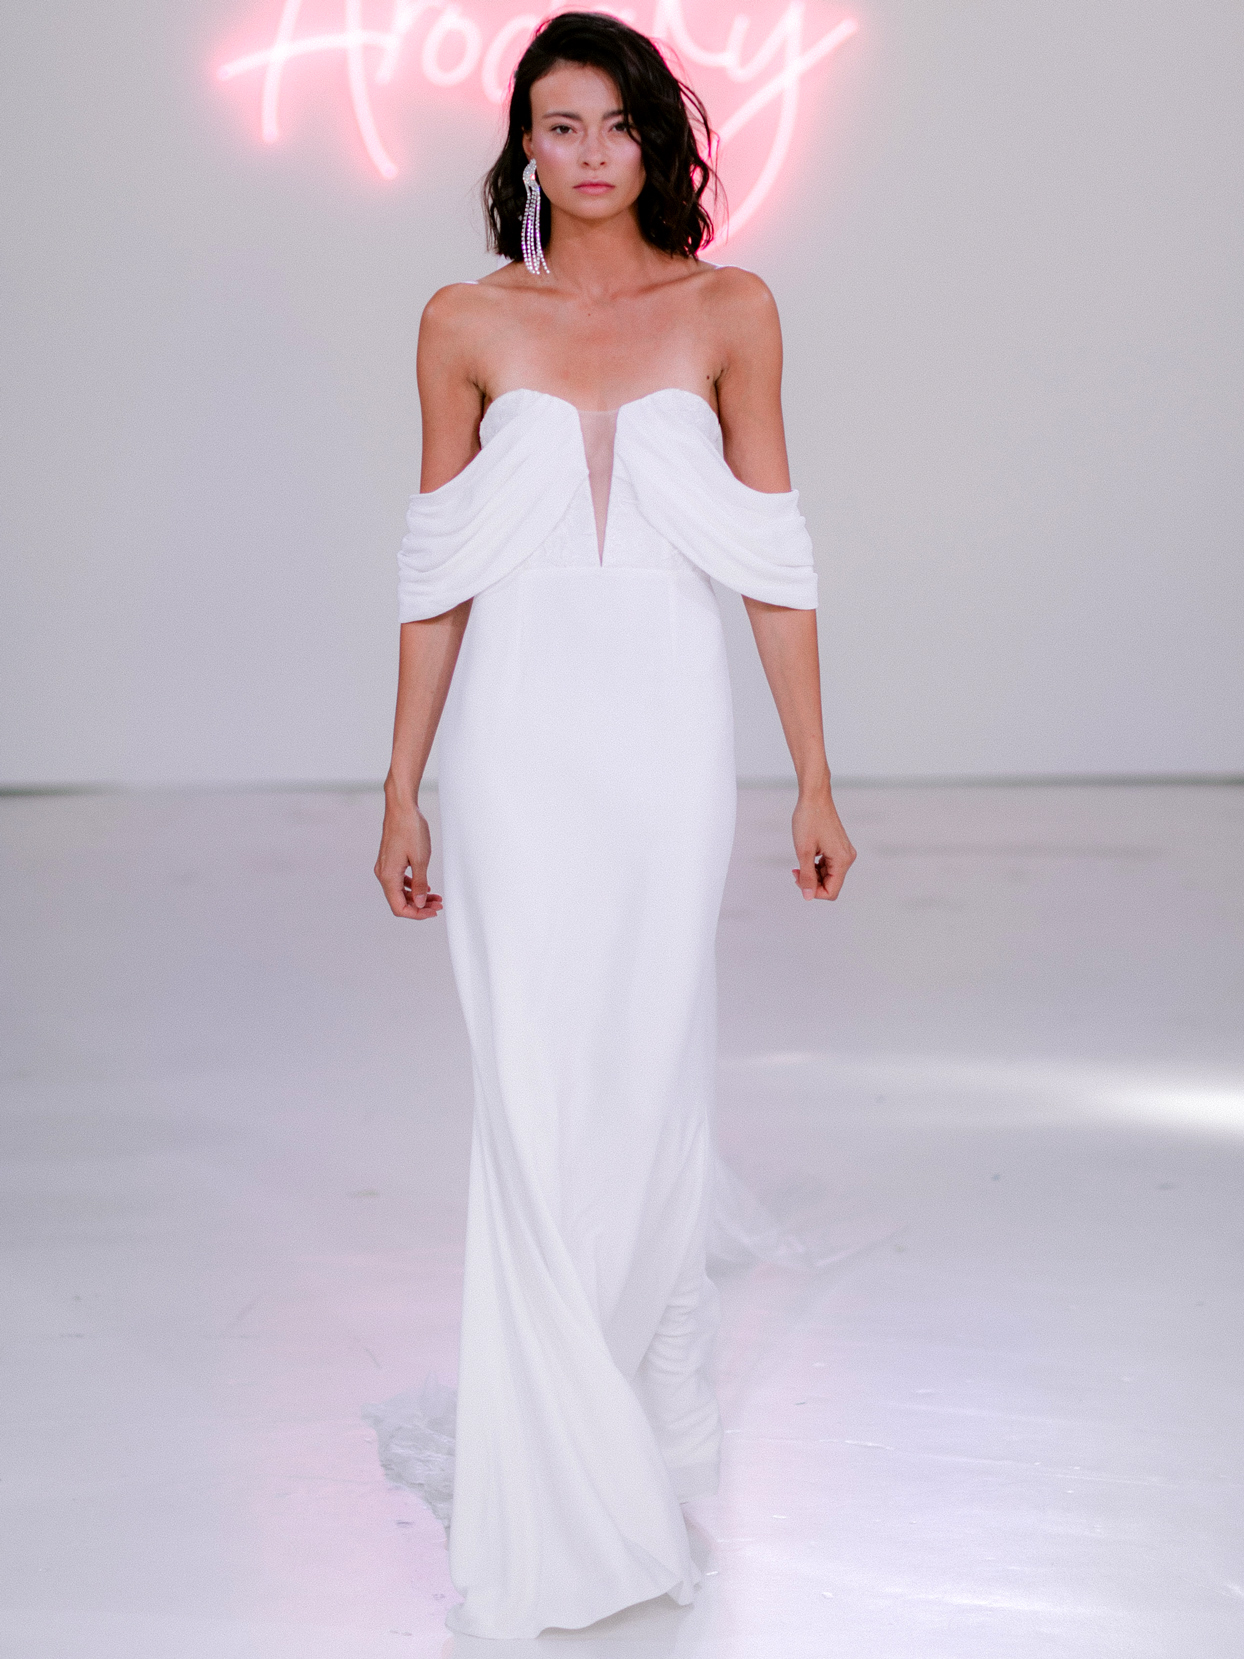 Rime Arodaky X The Mews Bridal off-the-shoulder a-line wedding dress fall 2020